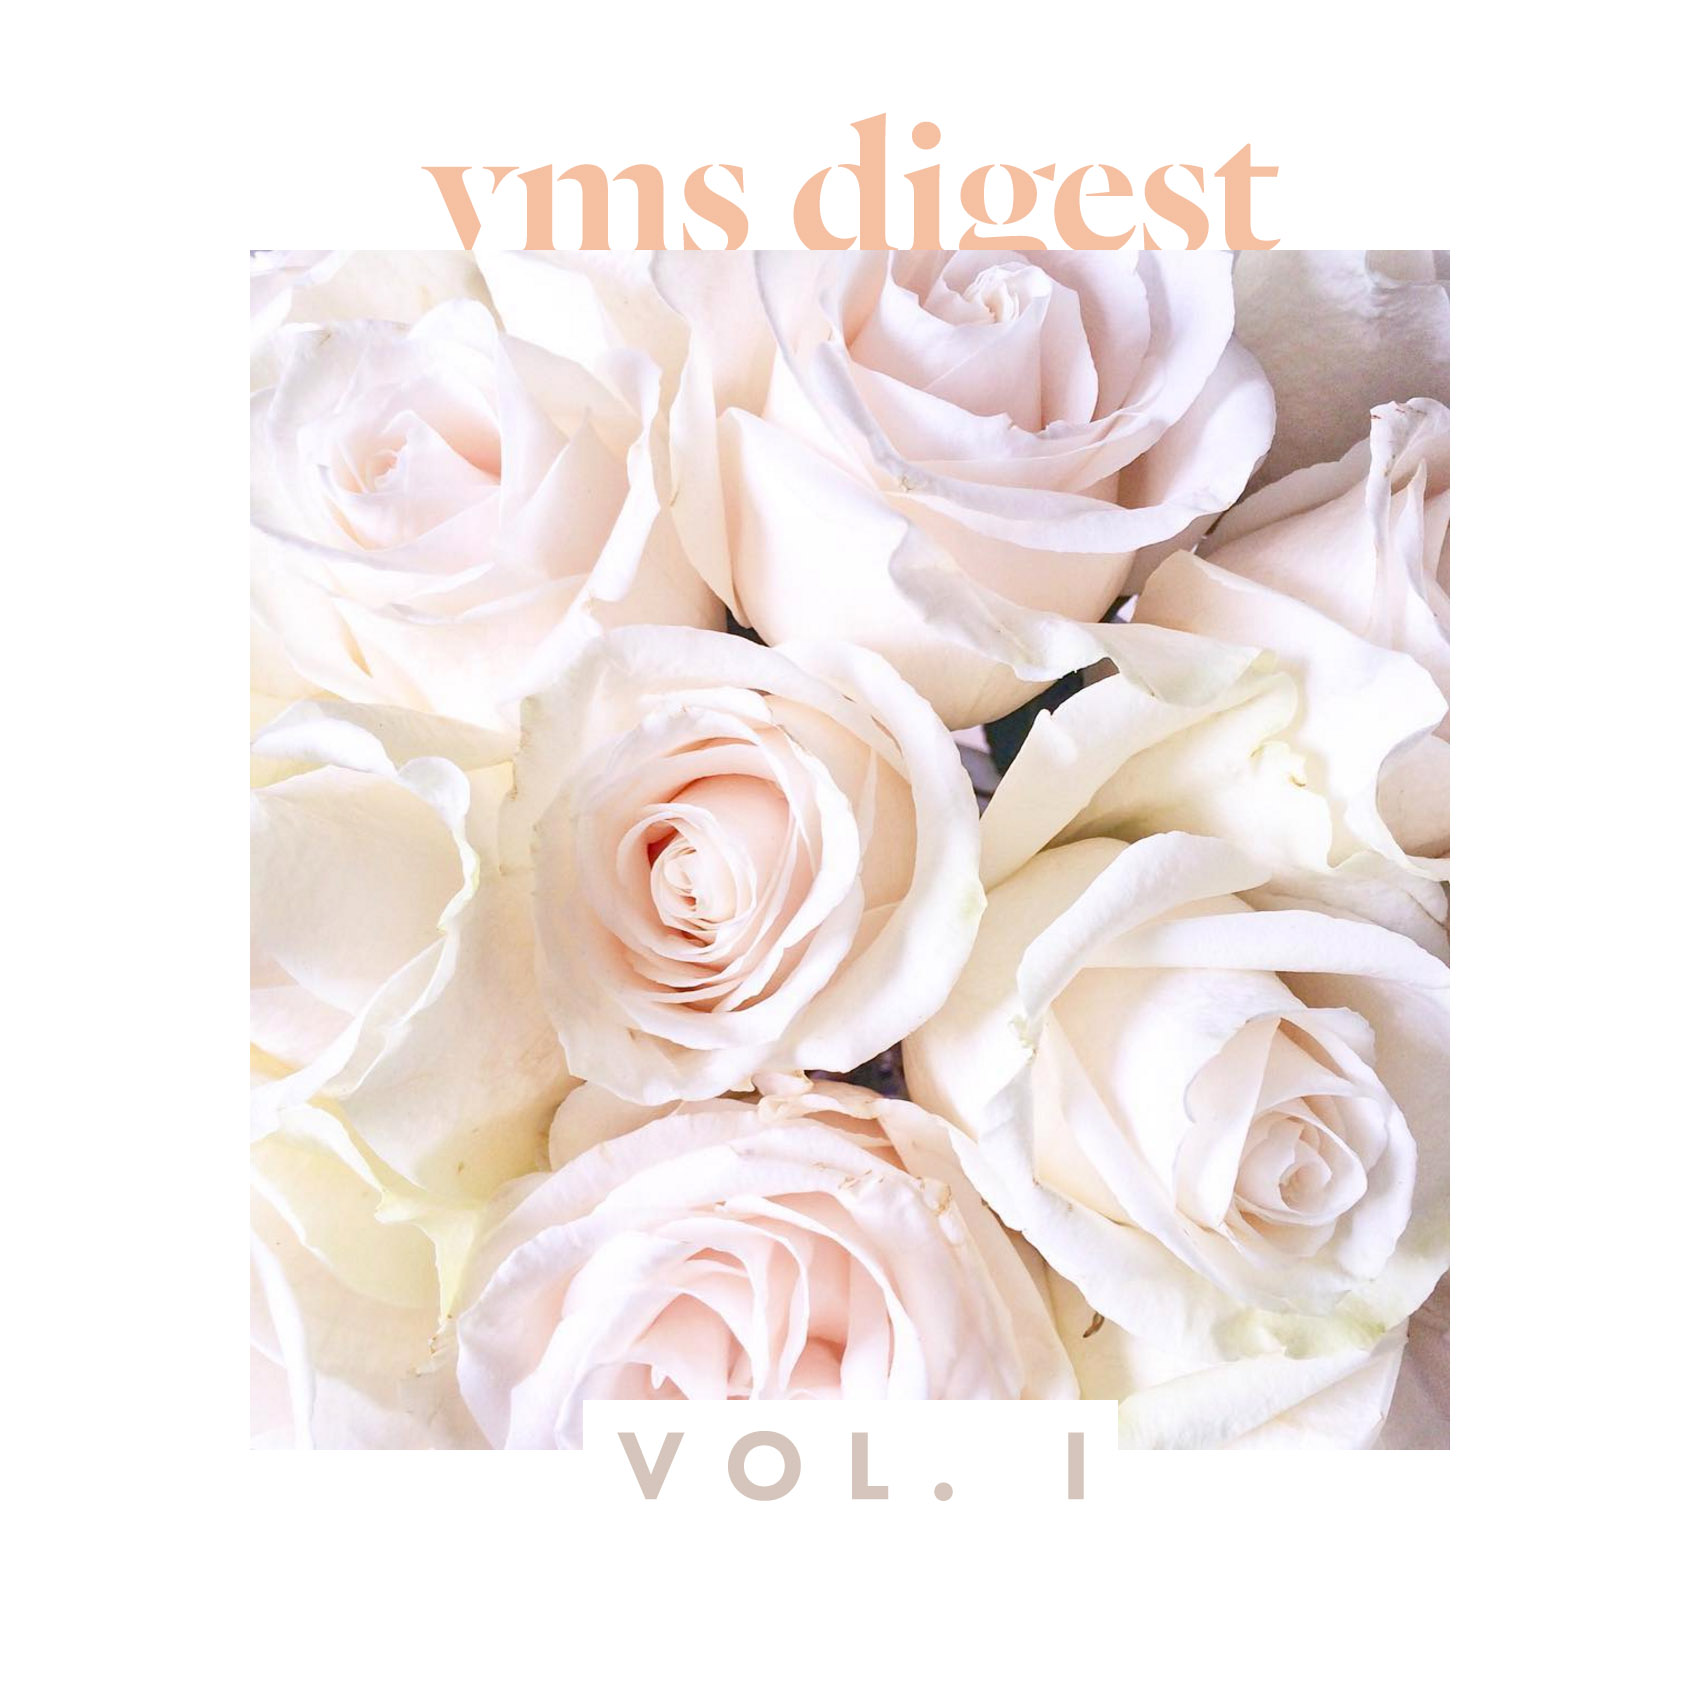 vms digest vol 1 | a roundup of great articles, sales to shop, and things to know about from @victoriamstudio